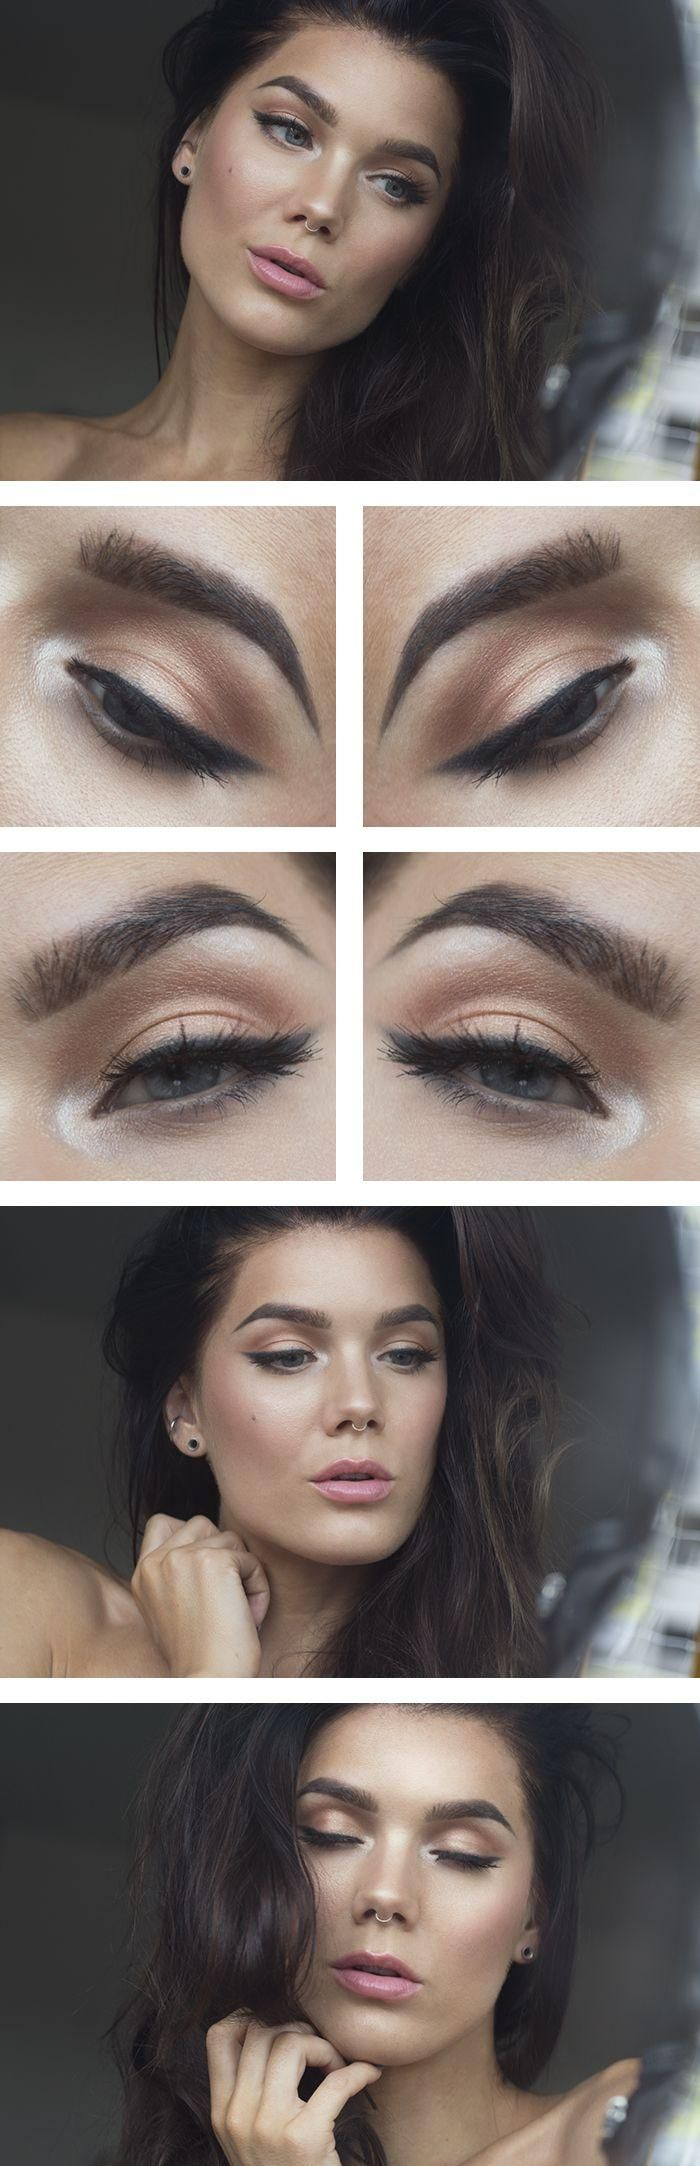 """Today's Look : """"Bronzed Up"""" by Linda Hallberg using the Anastasia Beverly Hills Amrezy Palette...07/22/14"""